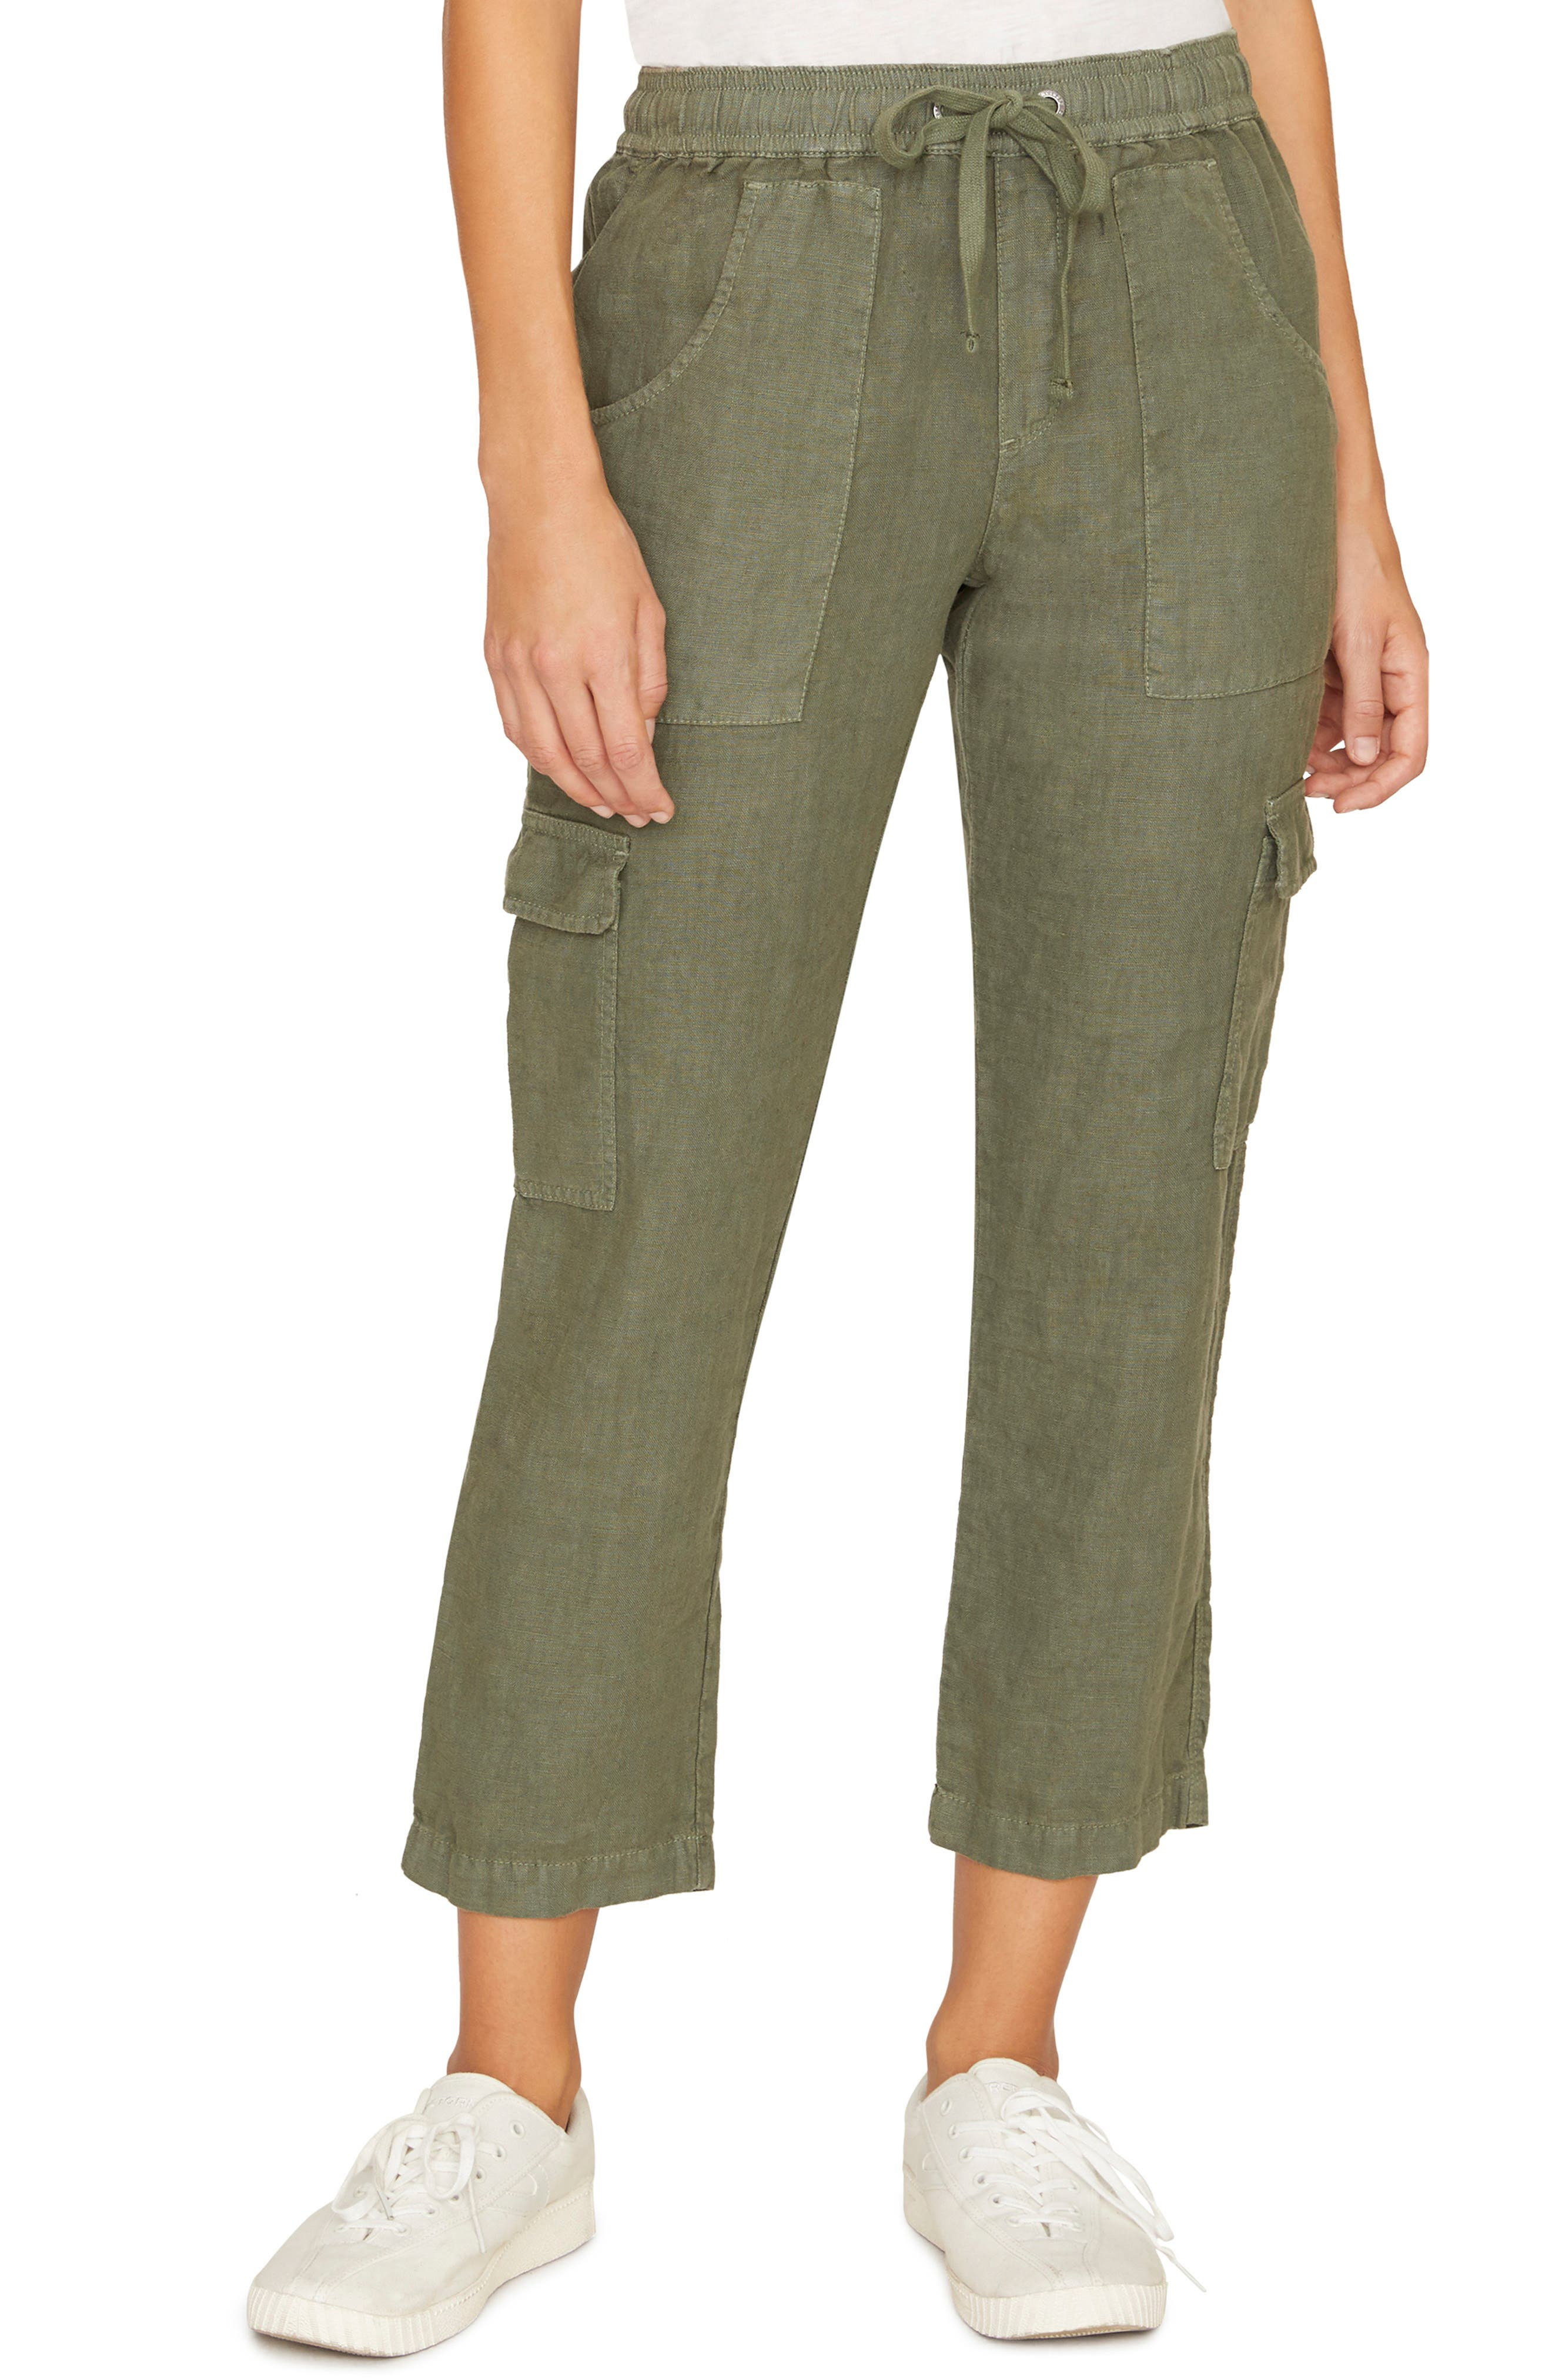 Sanctuary Discoverer Pull-On Cargo Pants, Green